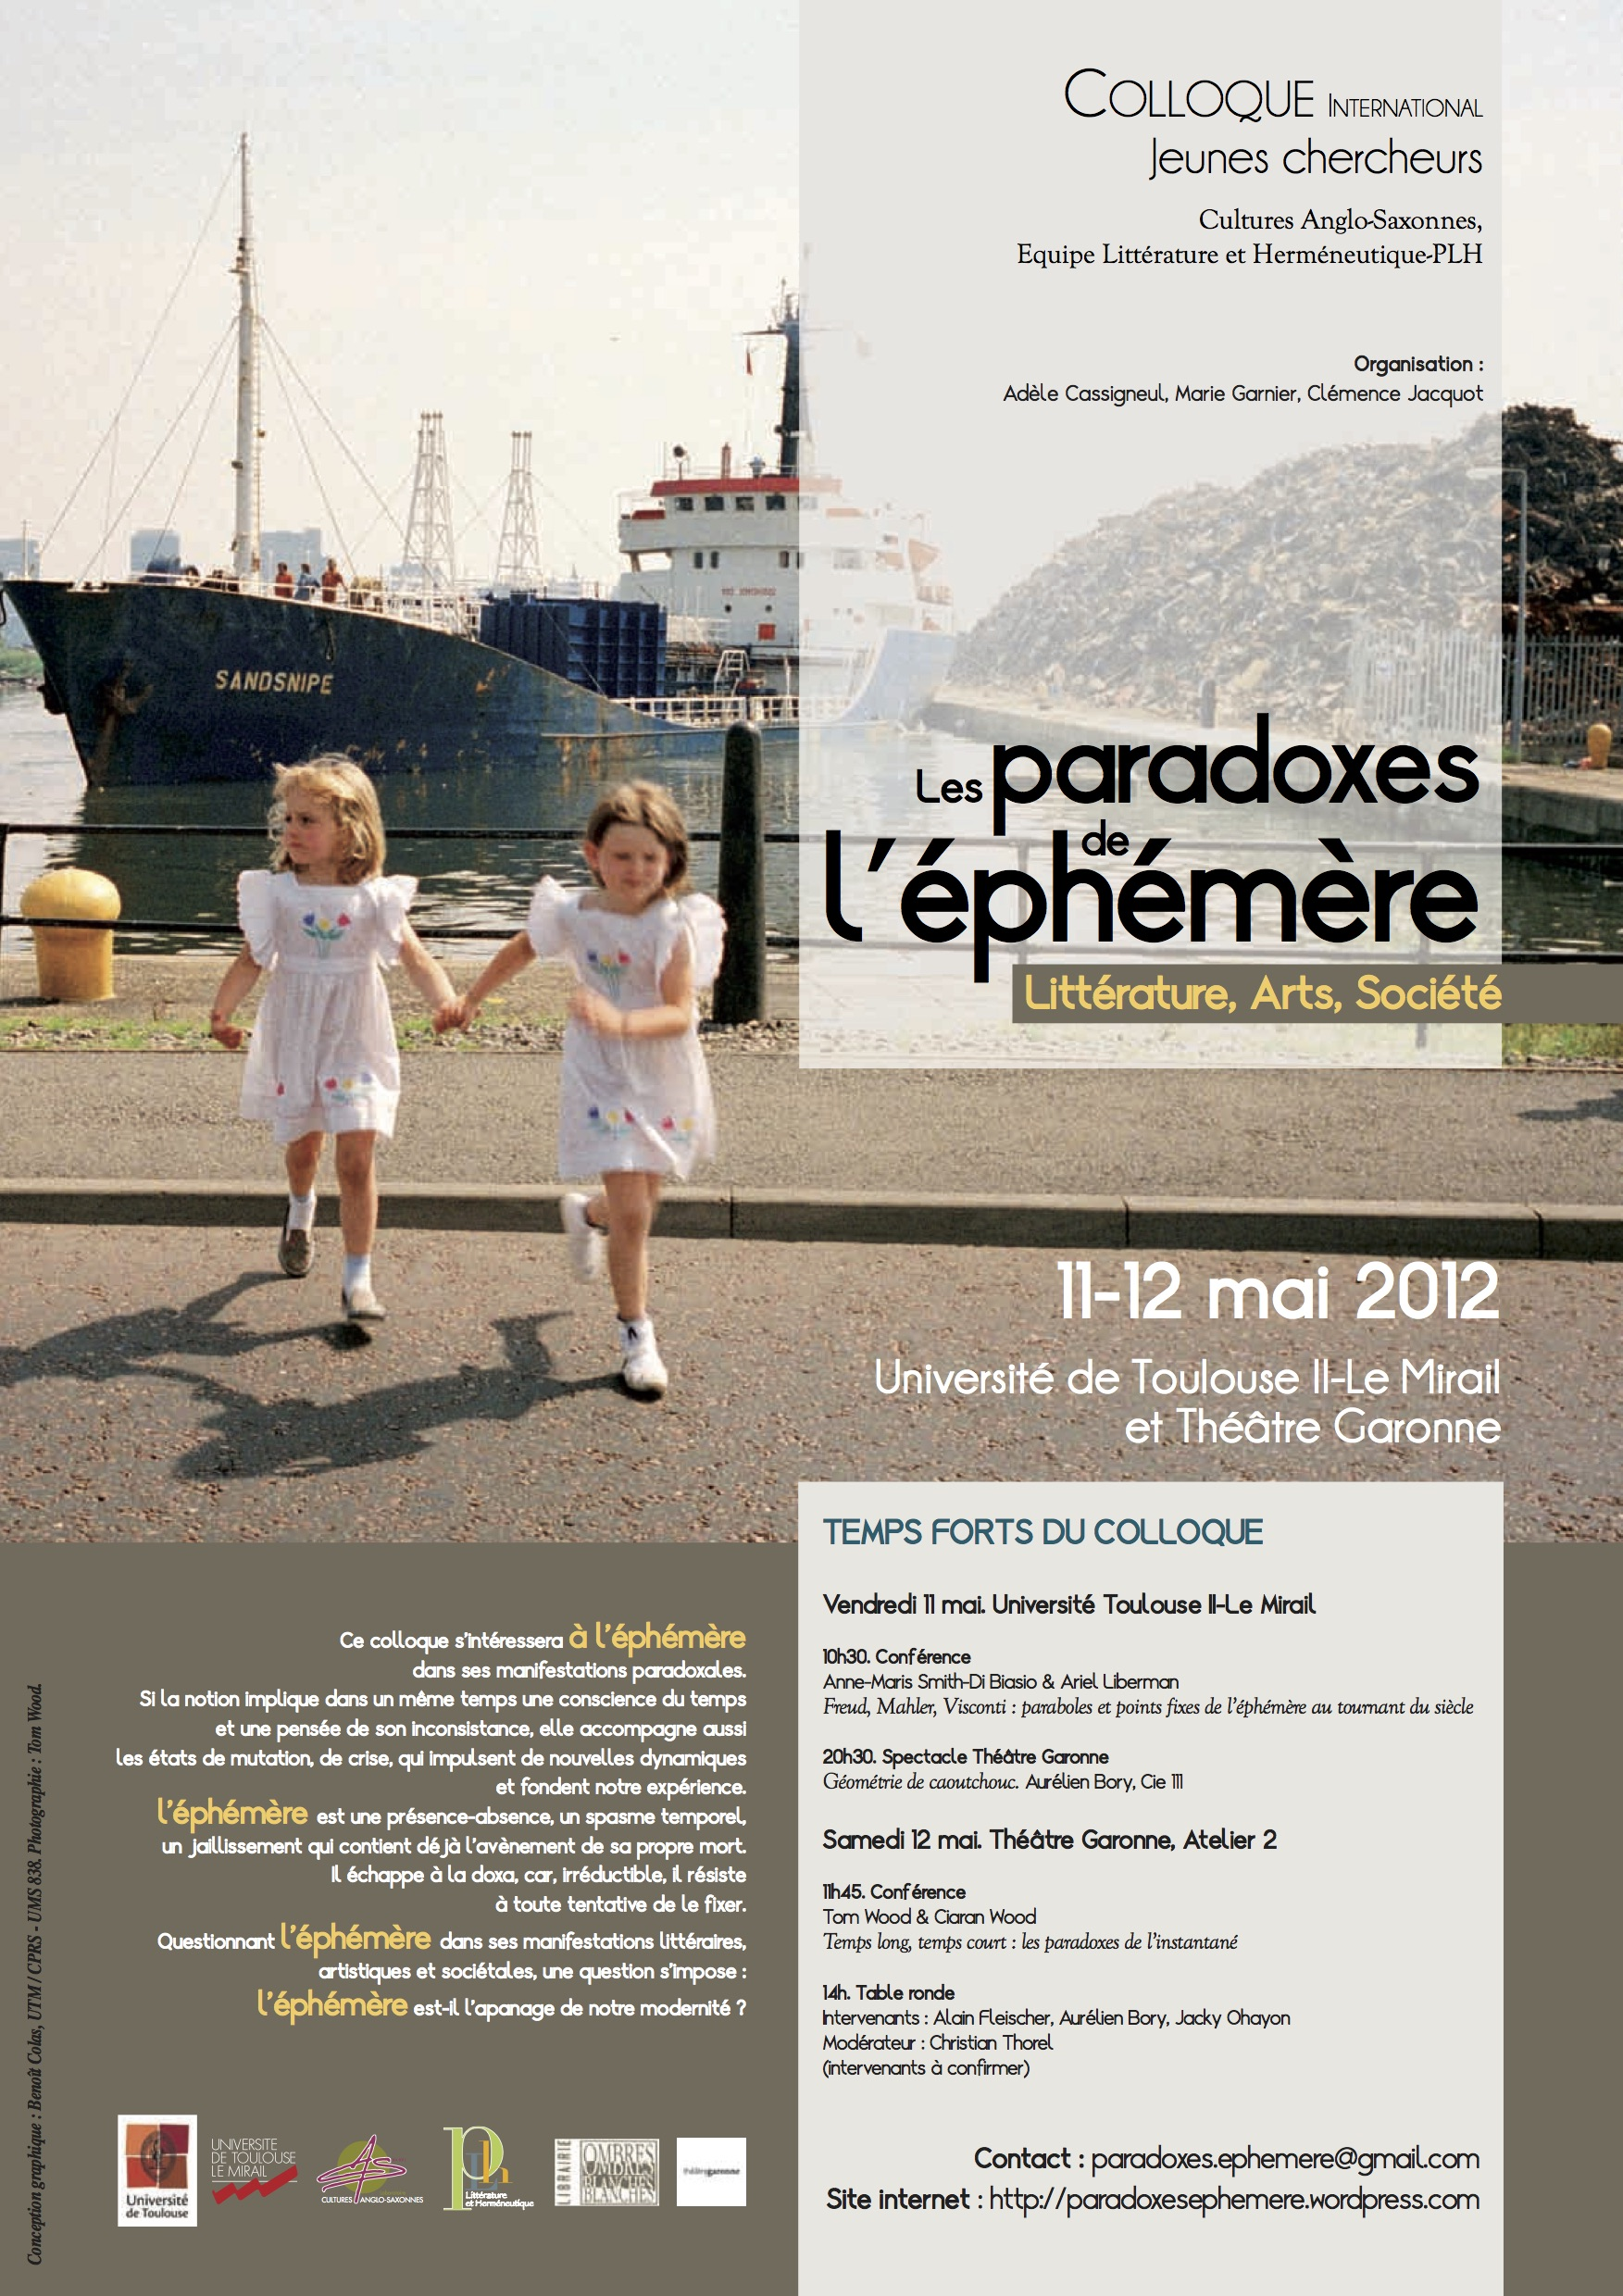 JE 11-12  05 12 Affiche Paradoxes.jpg